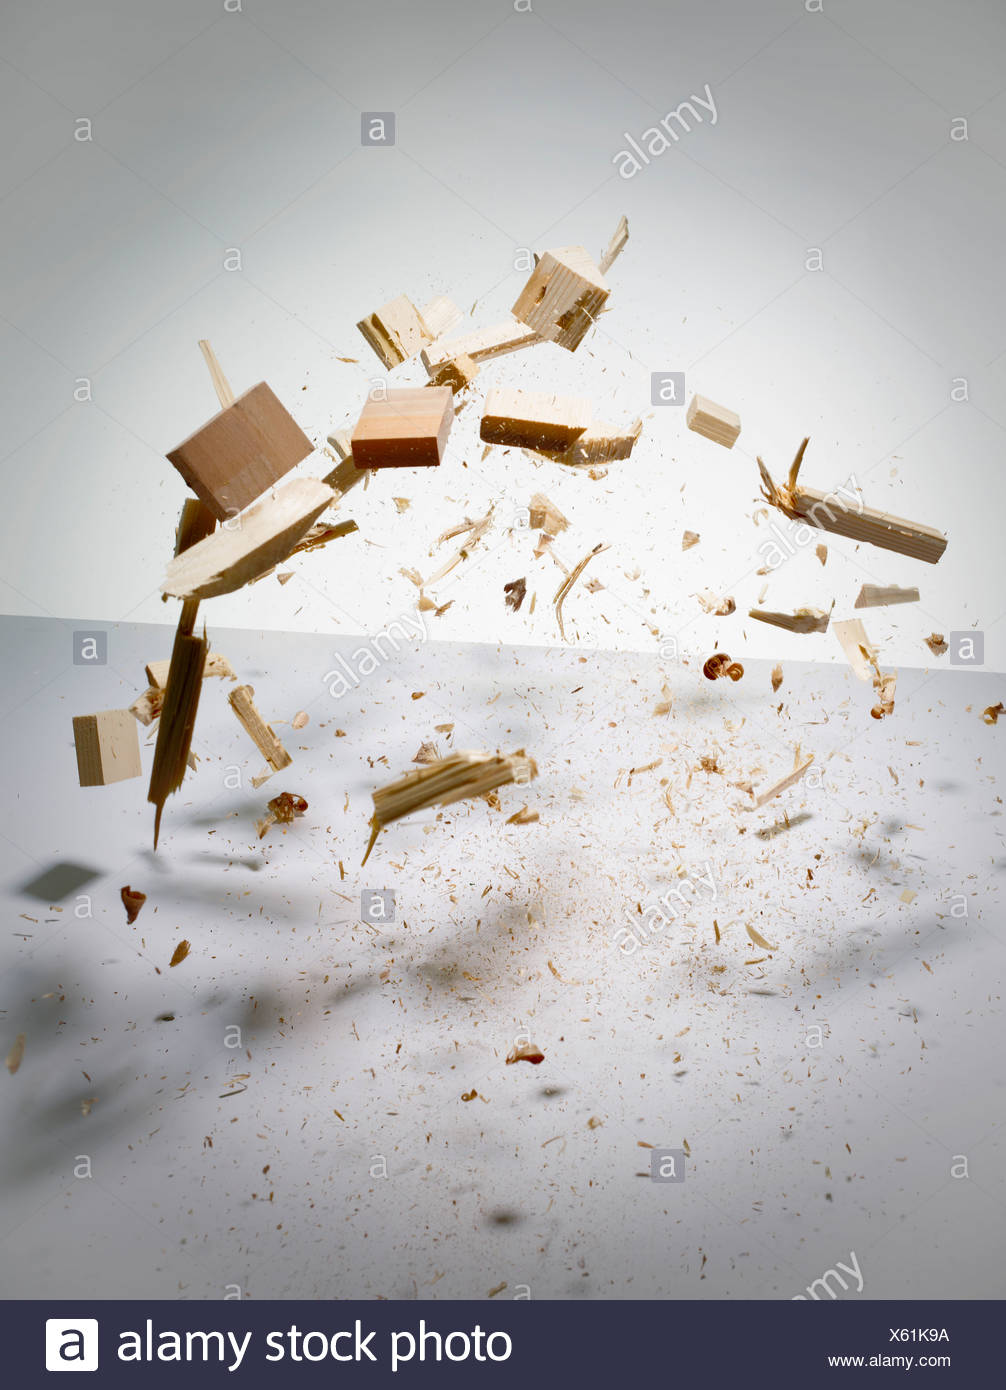 Wood exploding into pieces - Stock Image